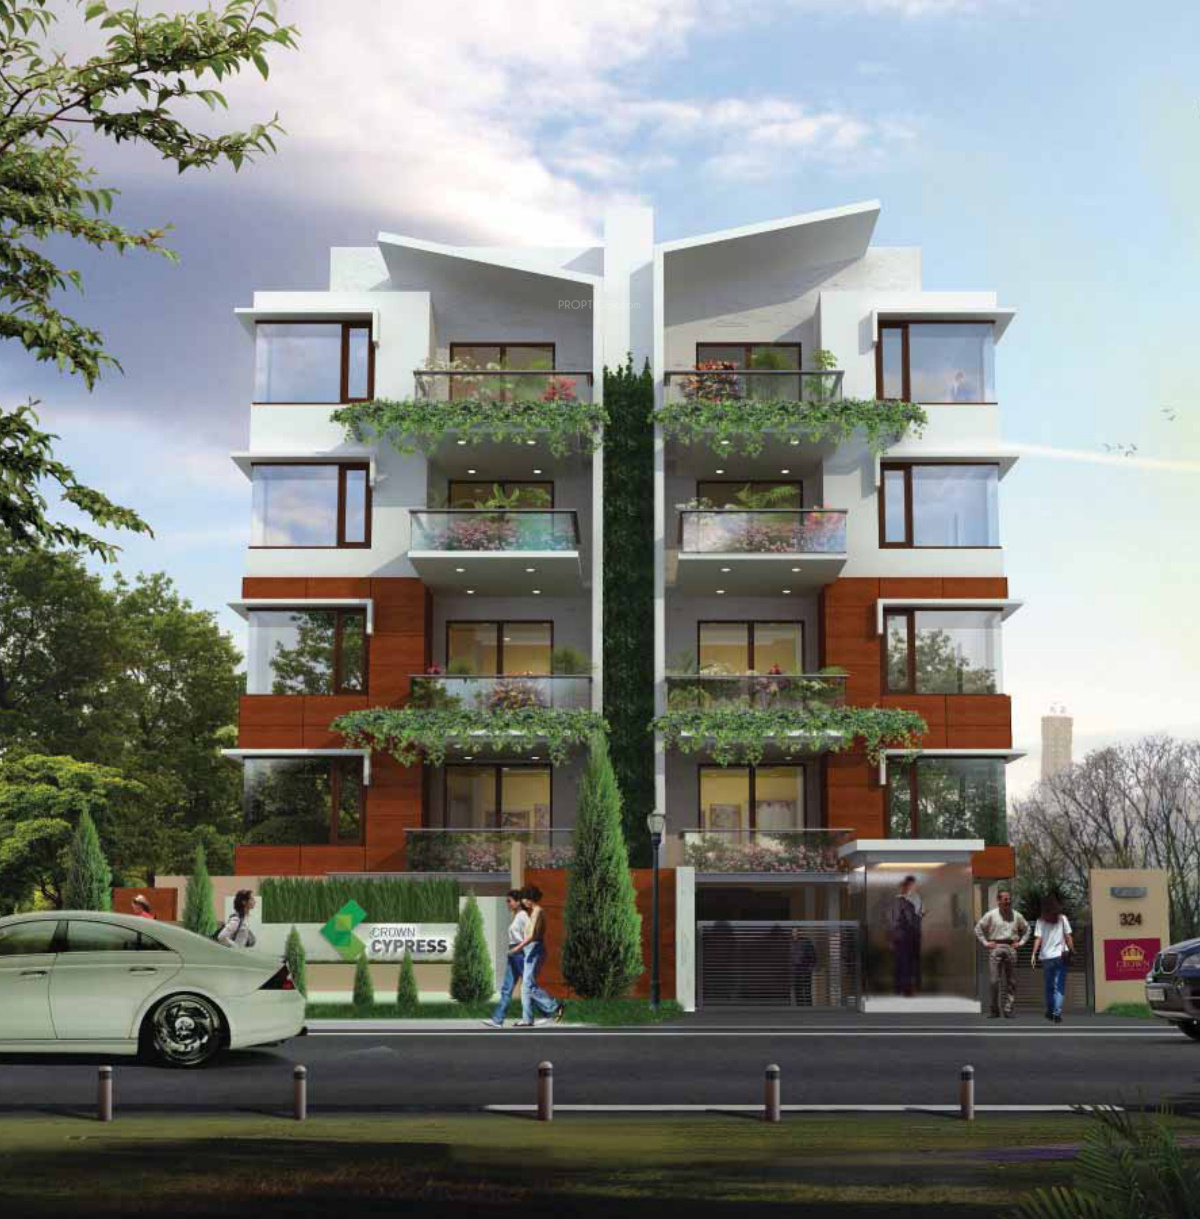 2075 Sq Ft 3 BHK 3T Apartment For Sale In Crown